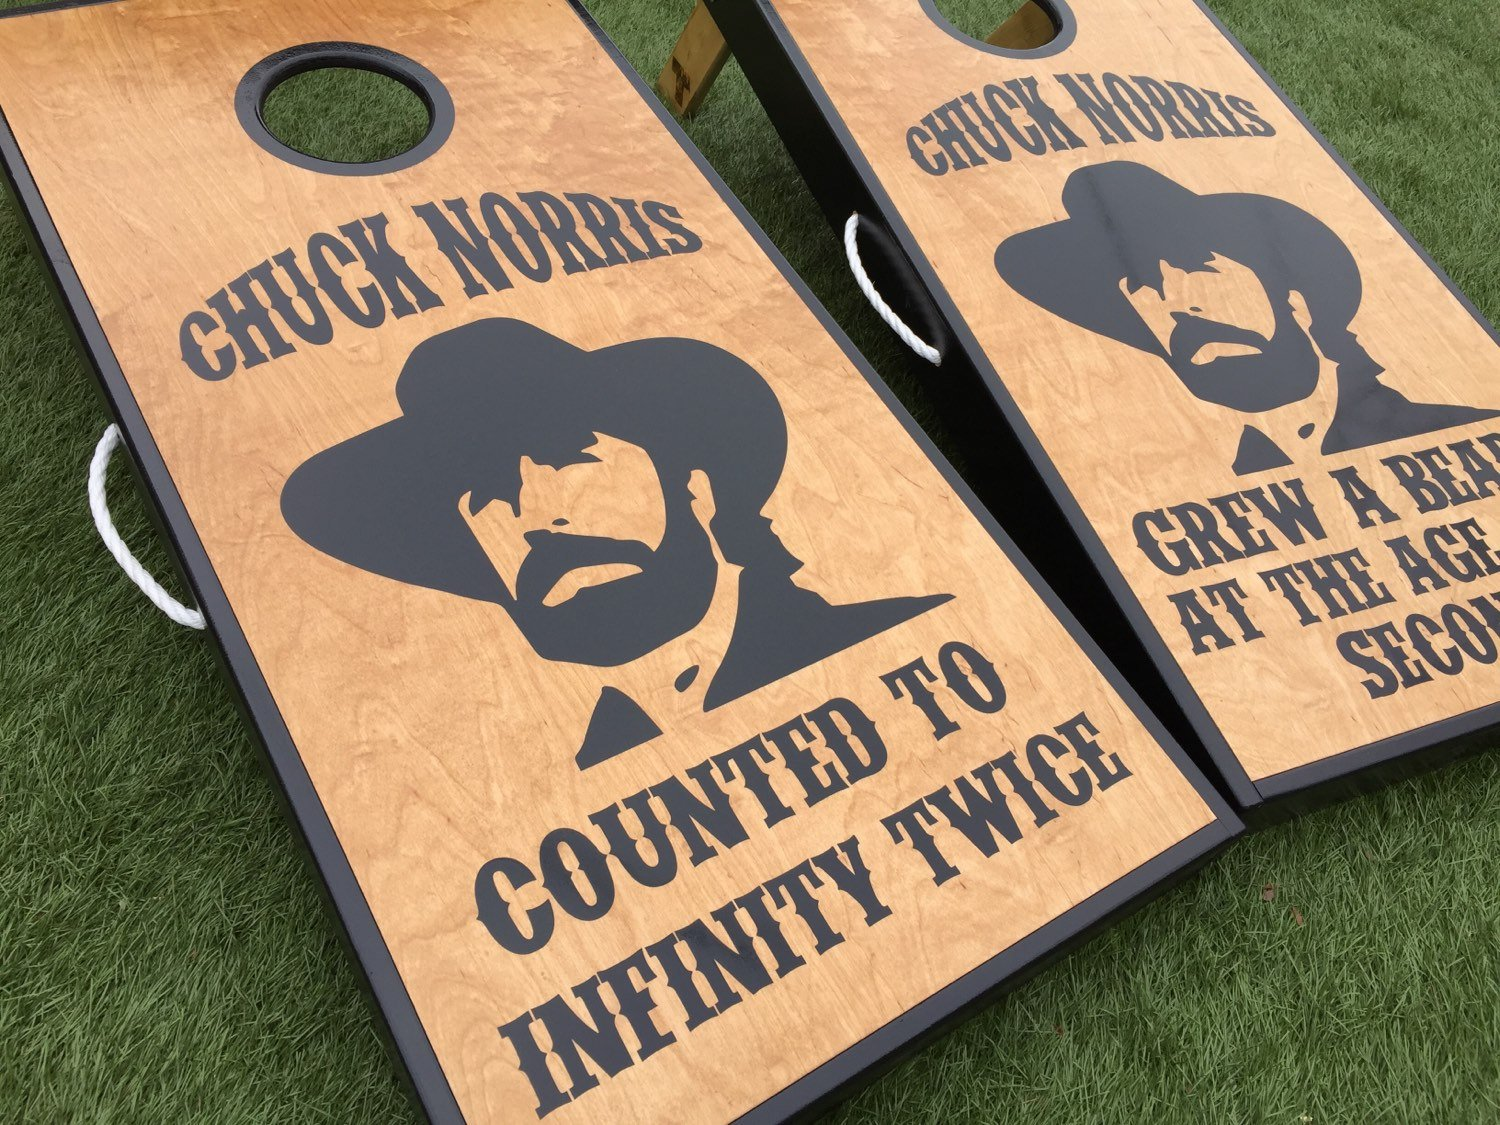 Chuck Norris Custom Cornhole Board Set